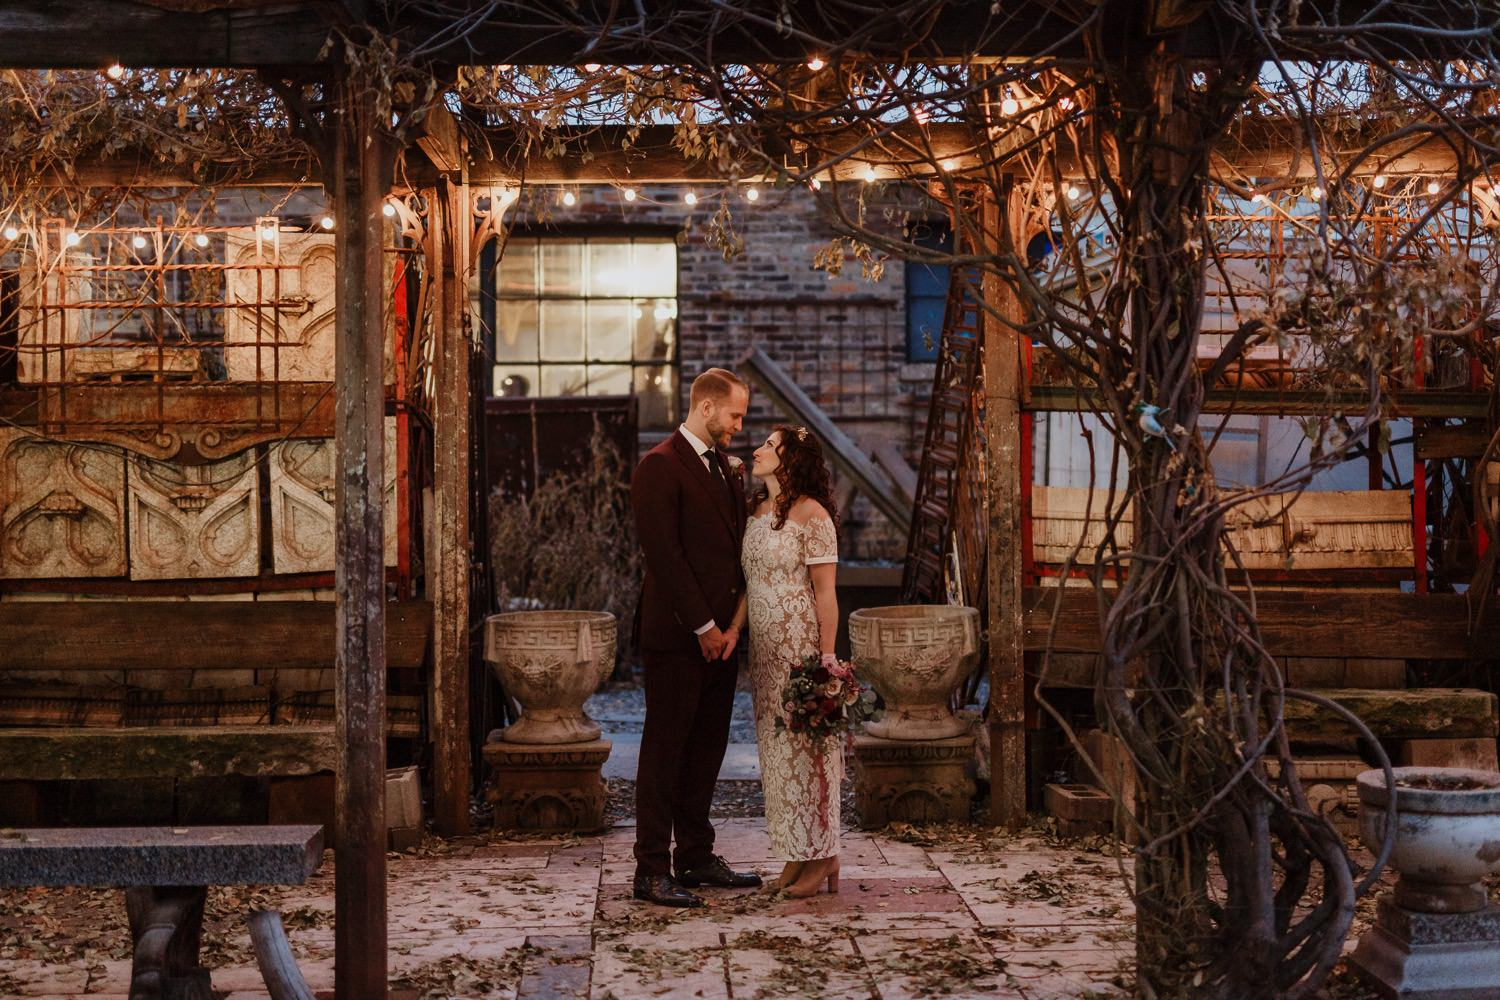 Bride and groom portrait in the garden of Salvage One during winter